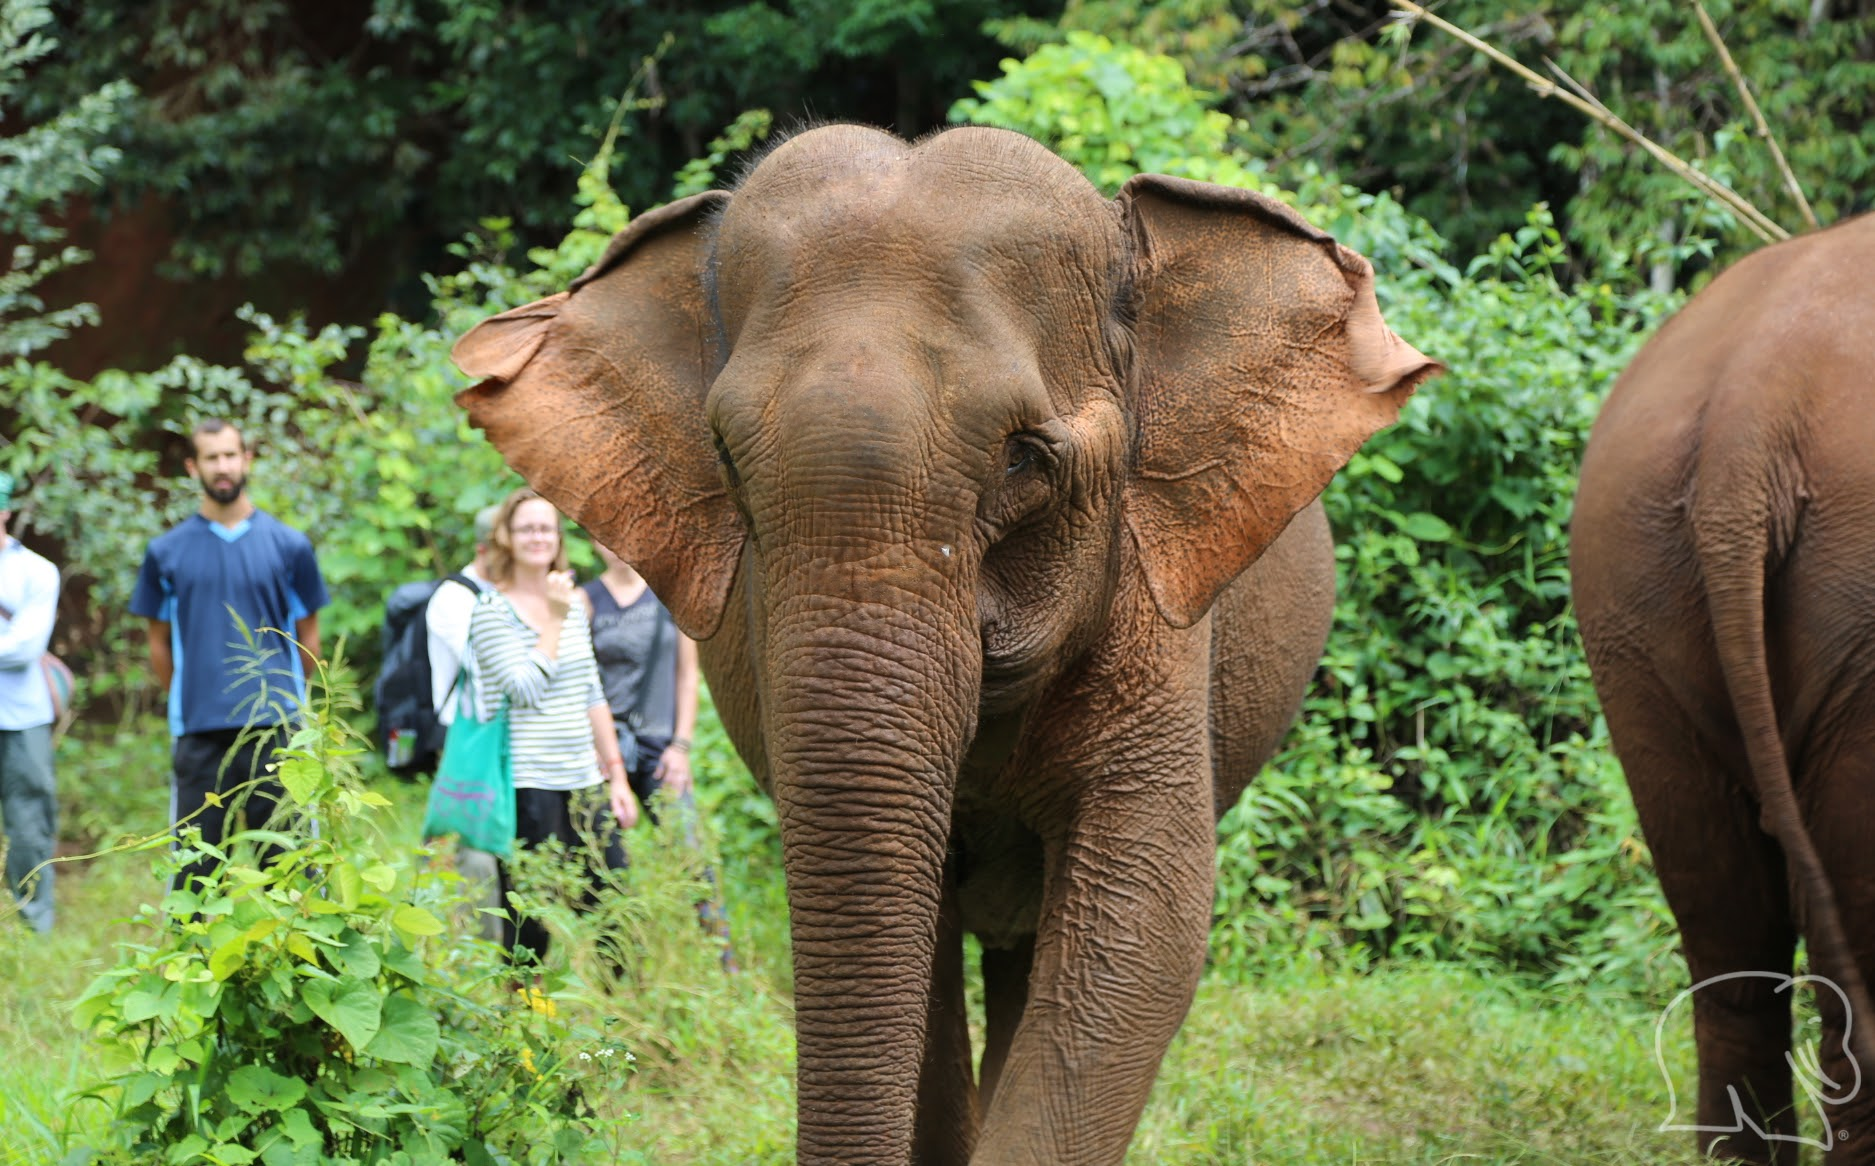 Volunteers with an elephant at the sanctuary